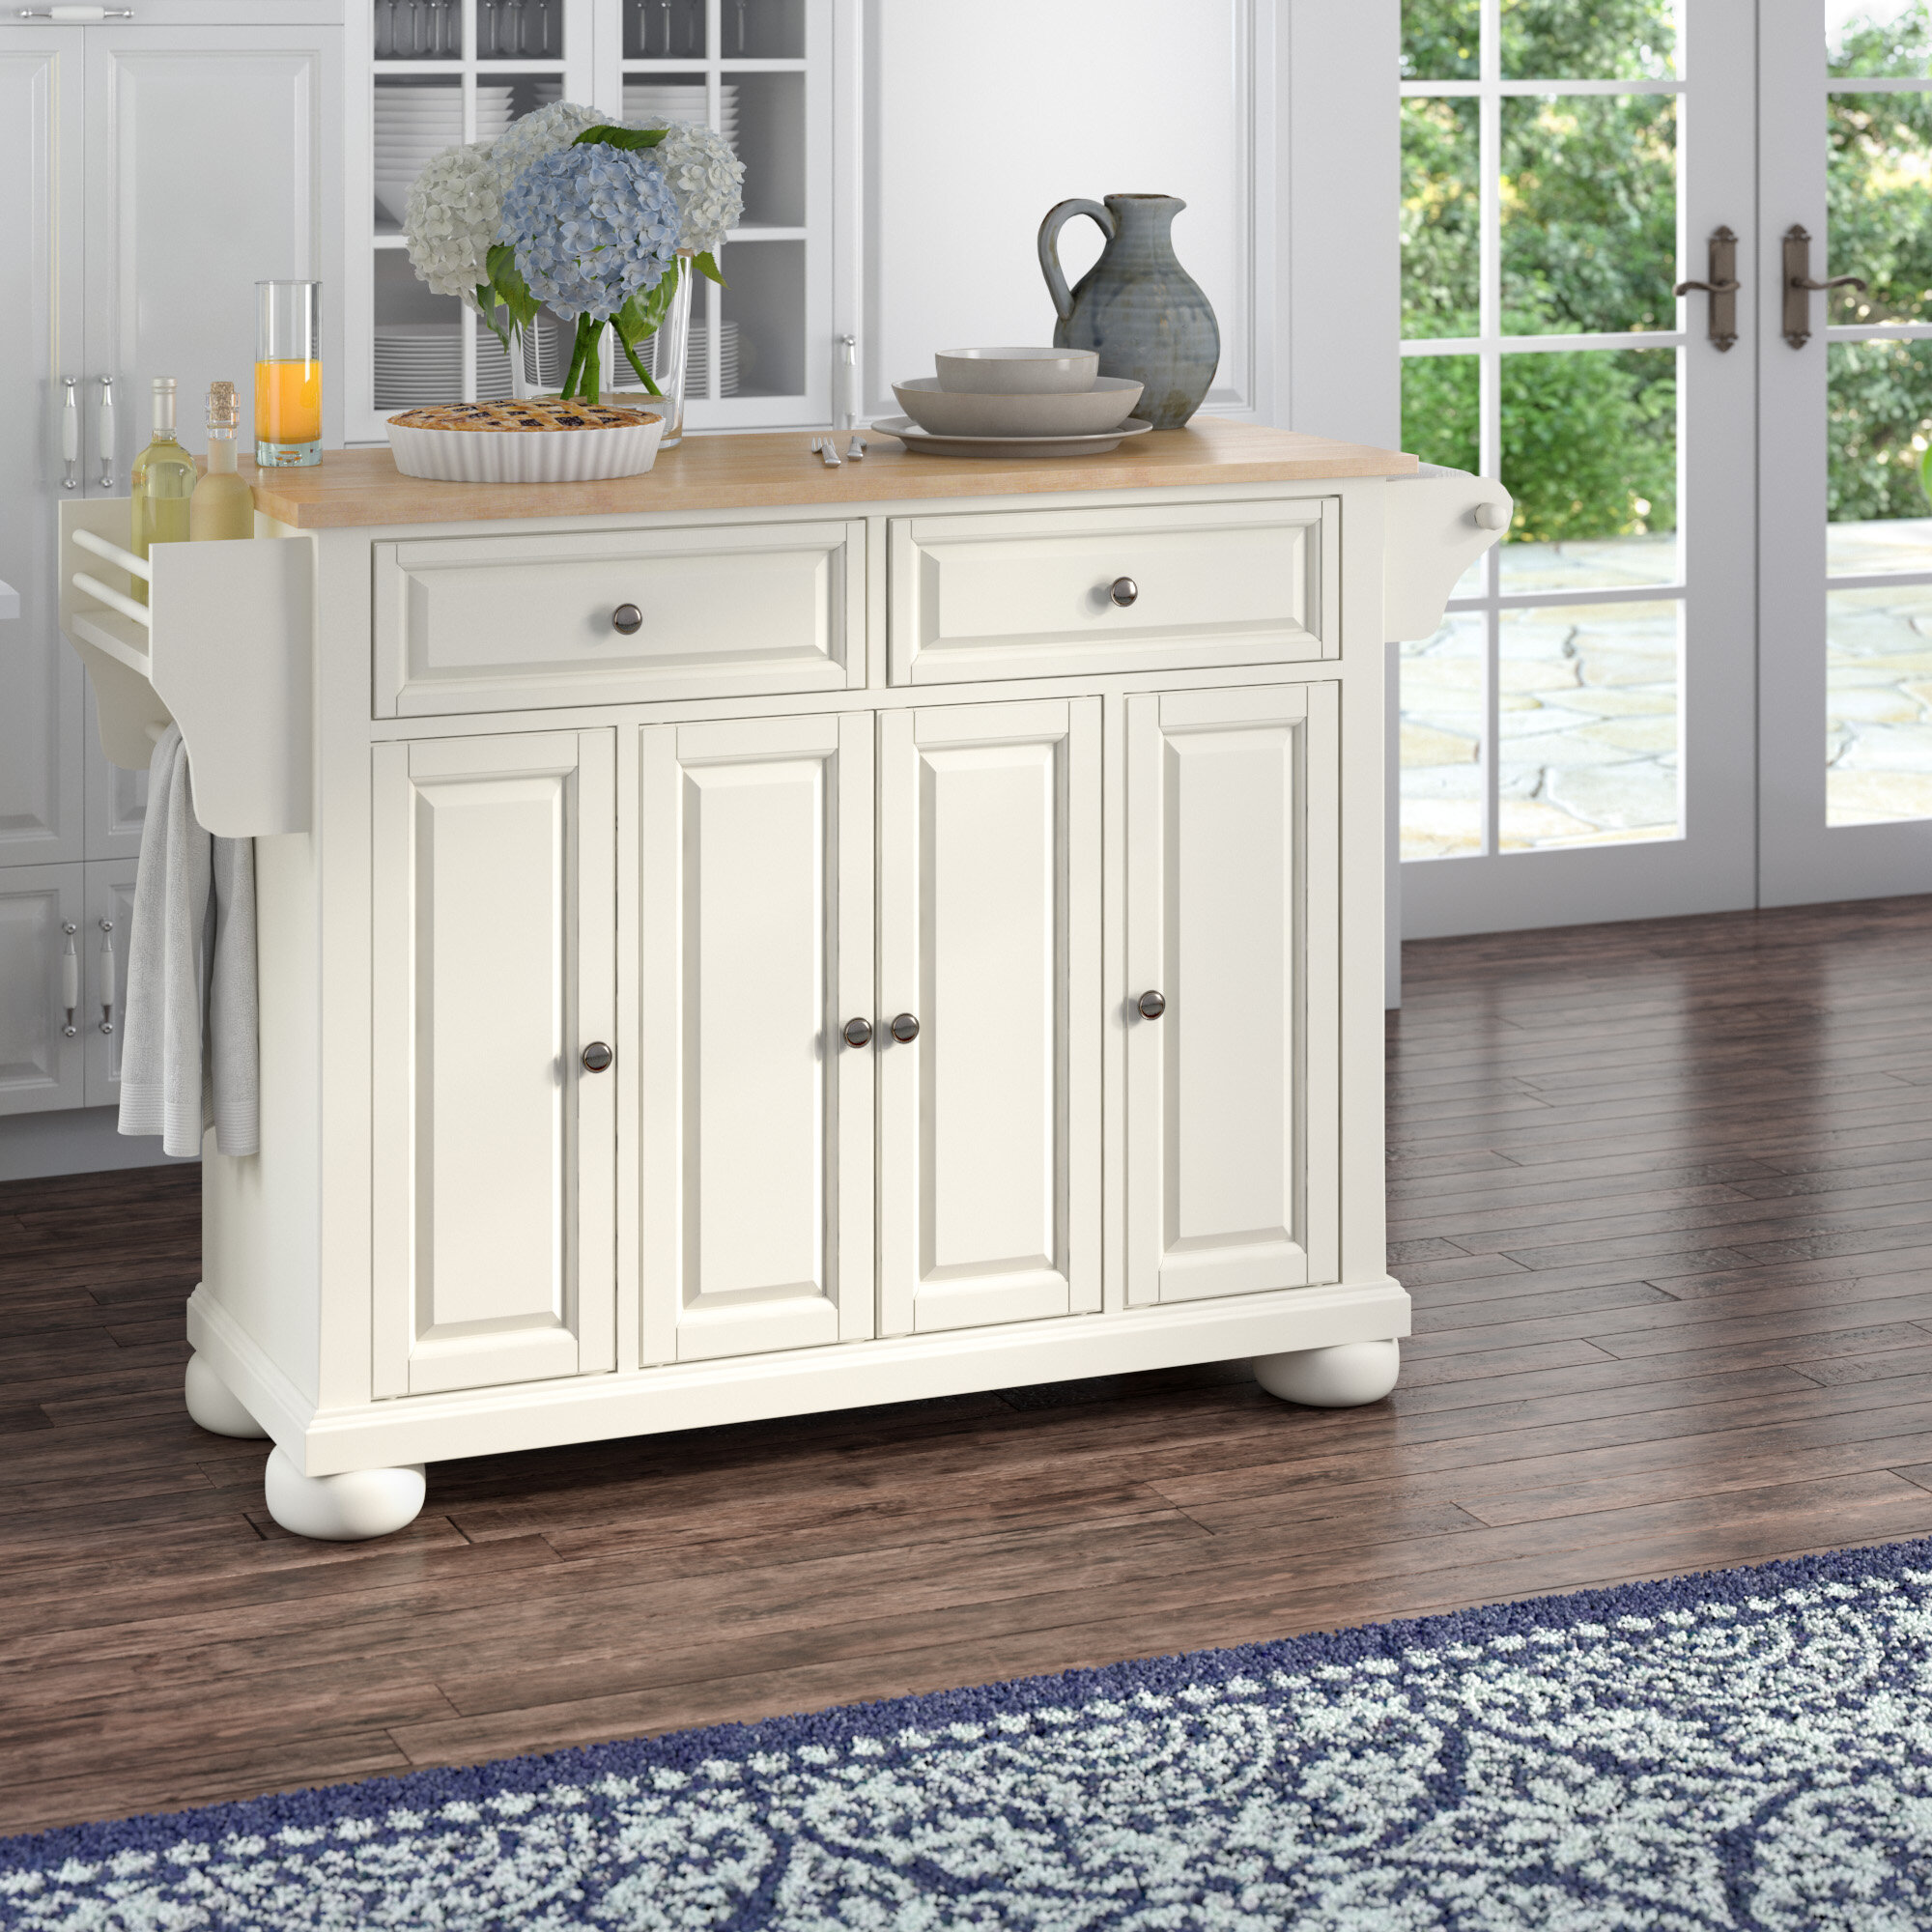 Darby Home Co Pottstown Kitchen Island with Wood Top & Reviews   Wayfair